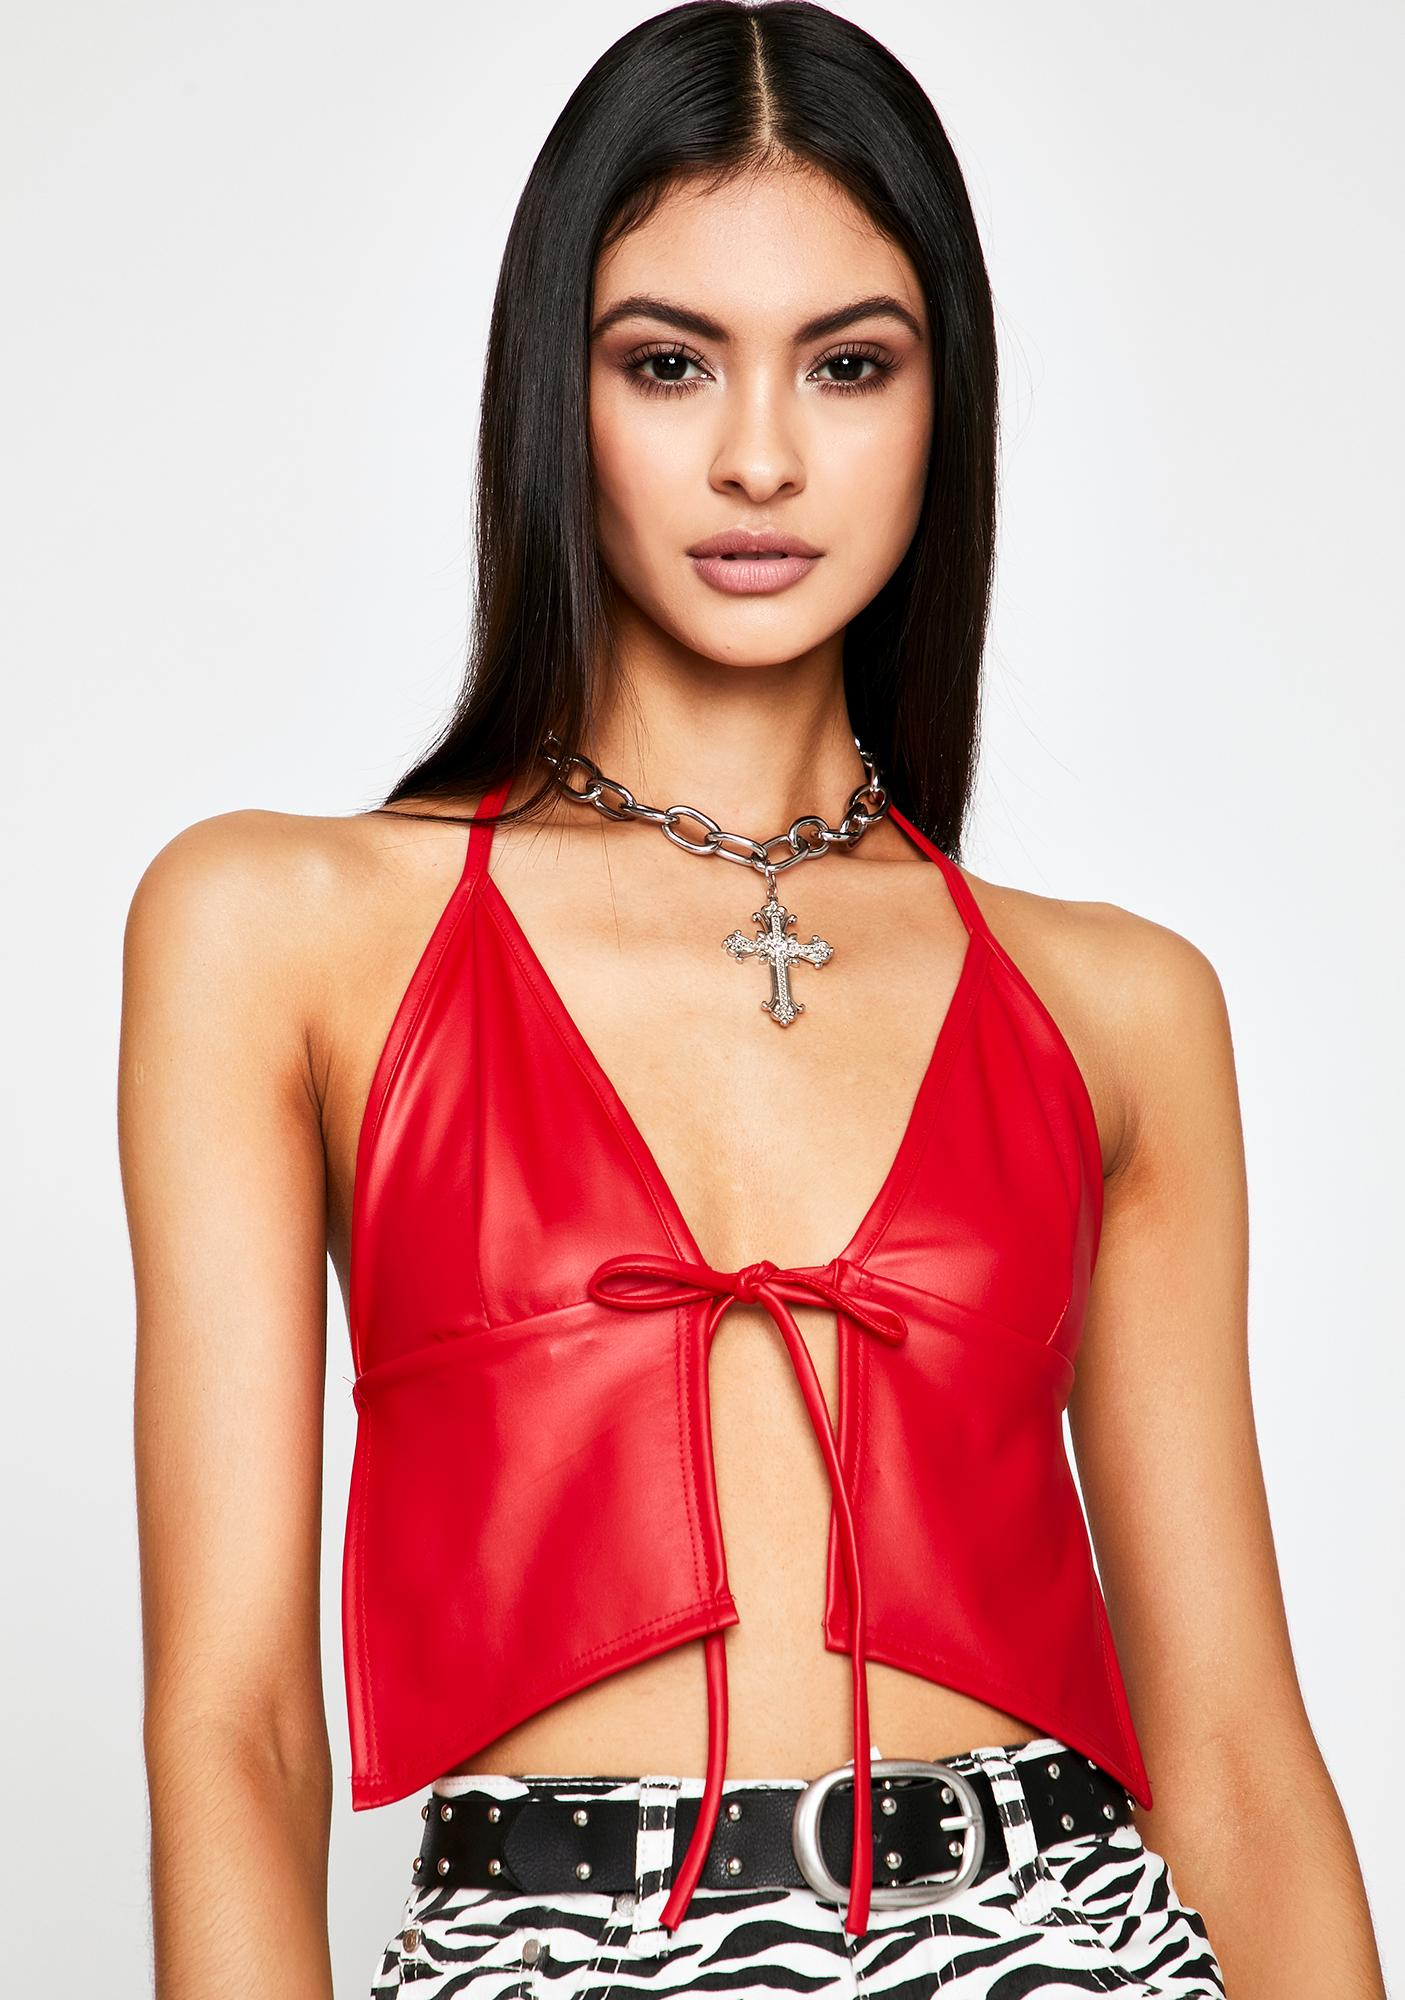 Fire Pain Proof Halter Crop Top by Dolls Kill